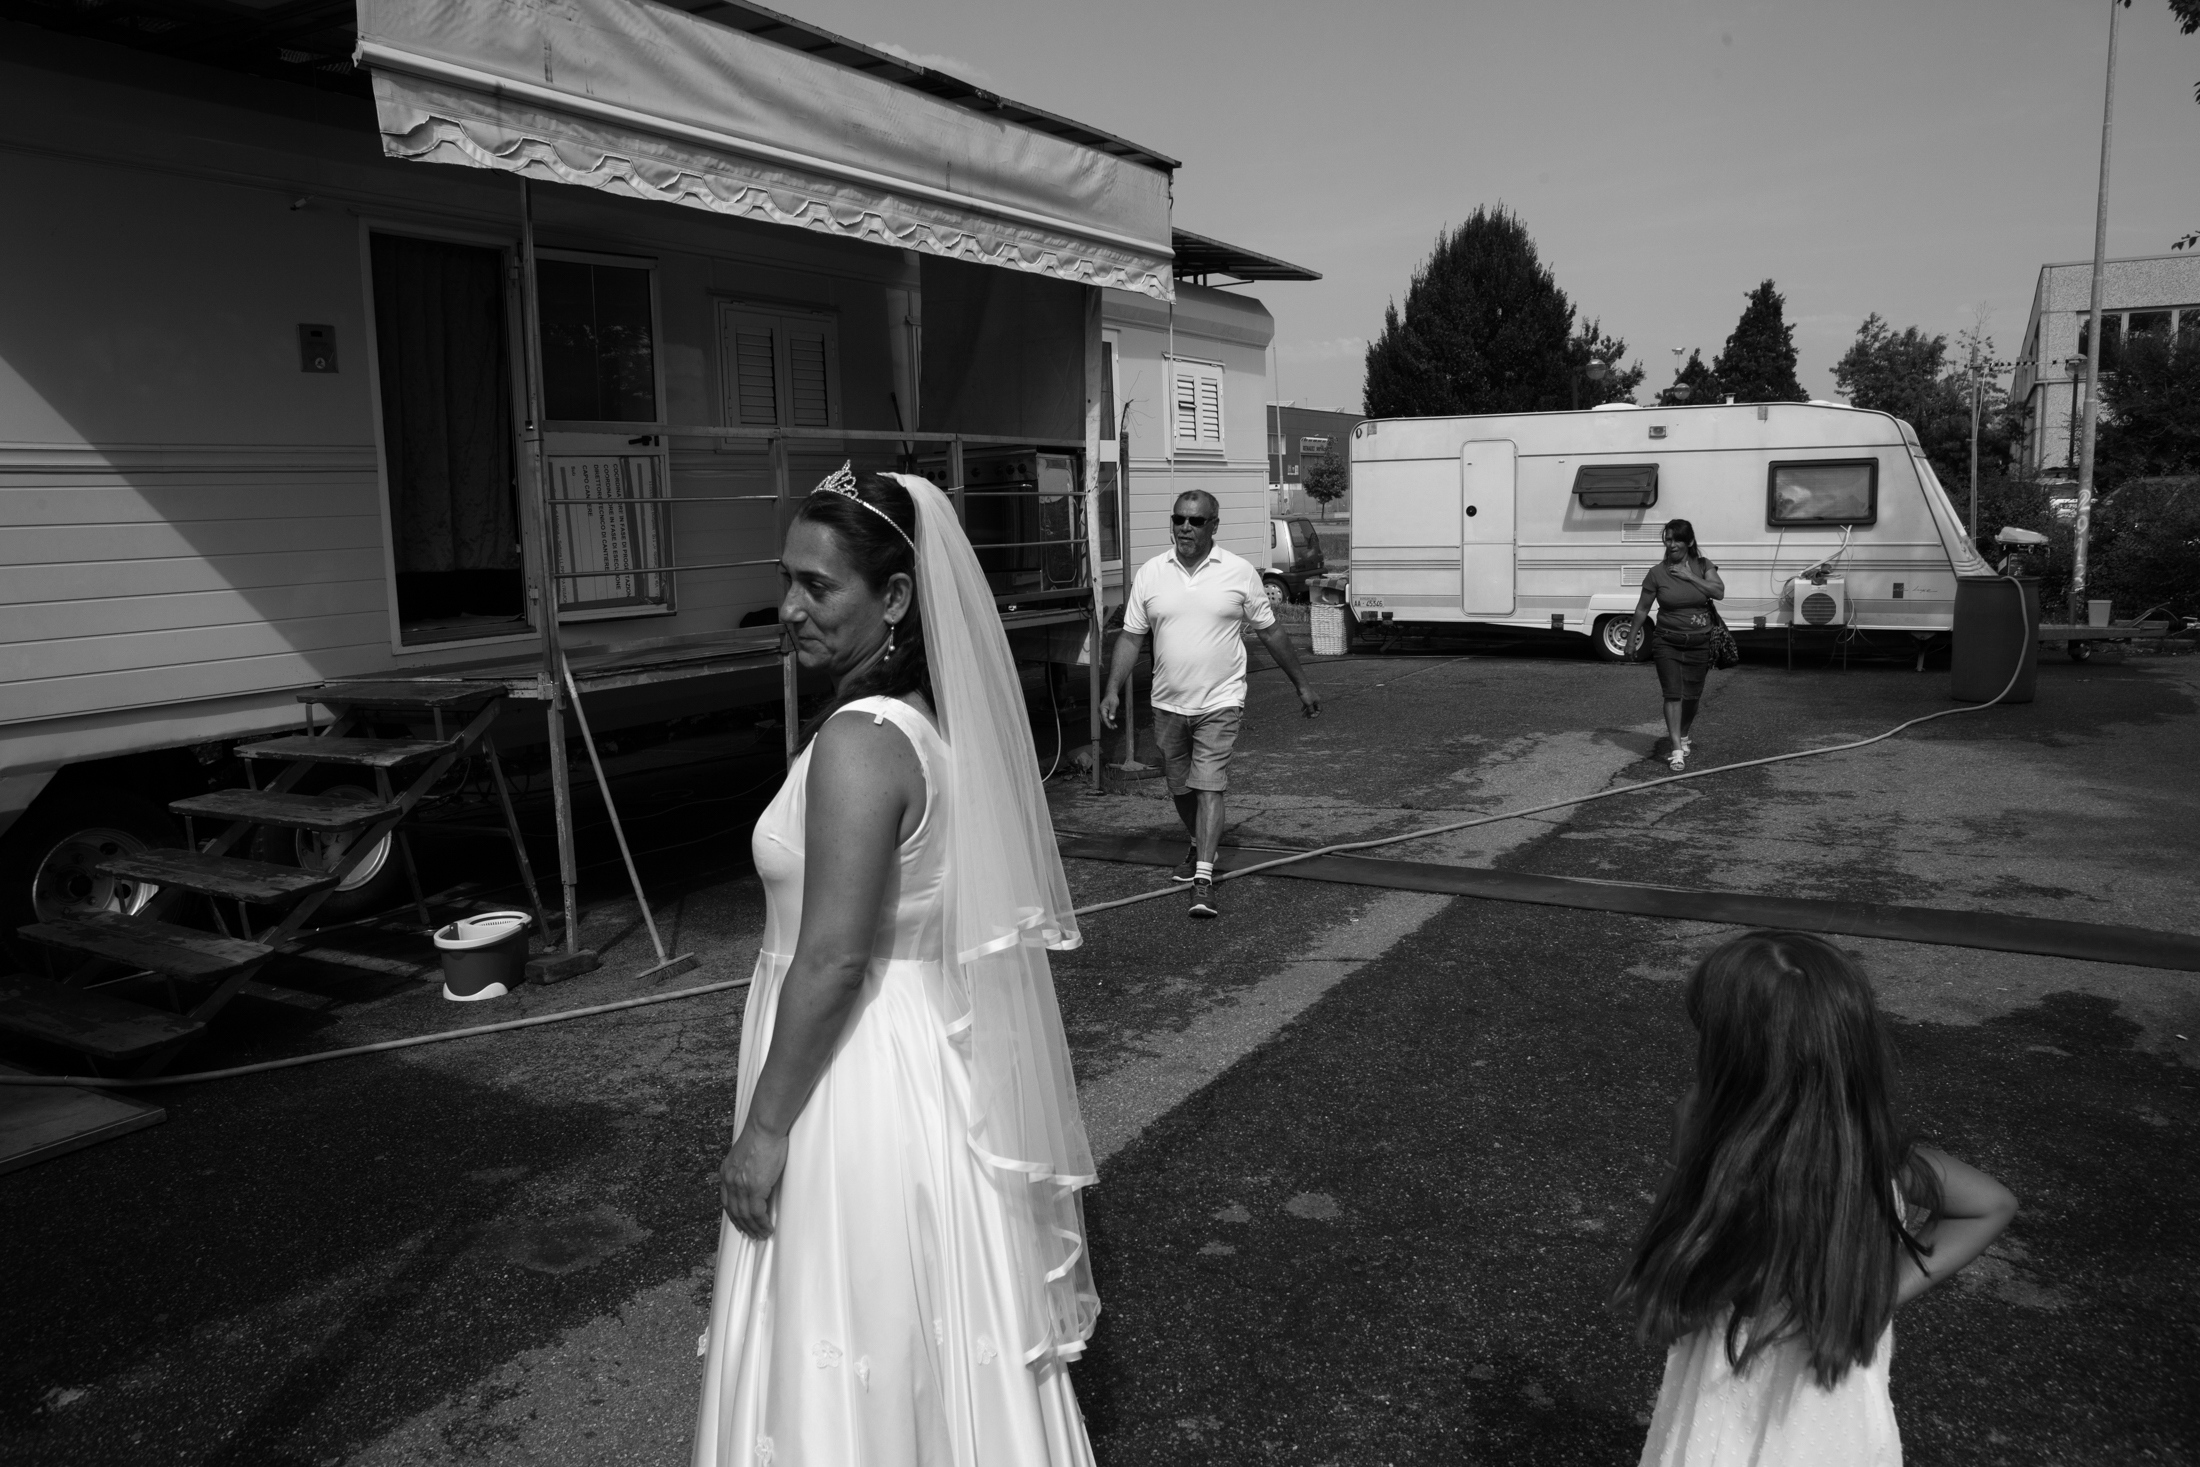 August 2018, Nomad Camp near to Castelnuovo Rangone, Emilia-Romagna, Italy. Linda's cousins is dressed up for starting her evangelical baptesim cerimony. The evangelical religion is becoming more and more established within the community, thanks to the possibility of redeeming oneself from sins and of embarking on a new way of life. In fact, these cults are reaching ever greater numbers of believers through adult group baptisms and children.